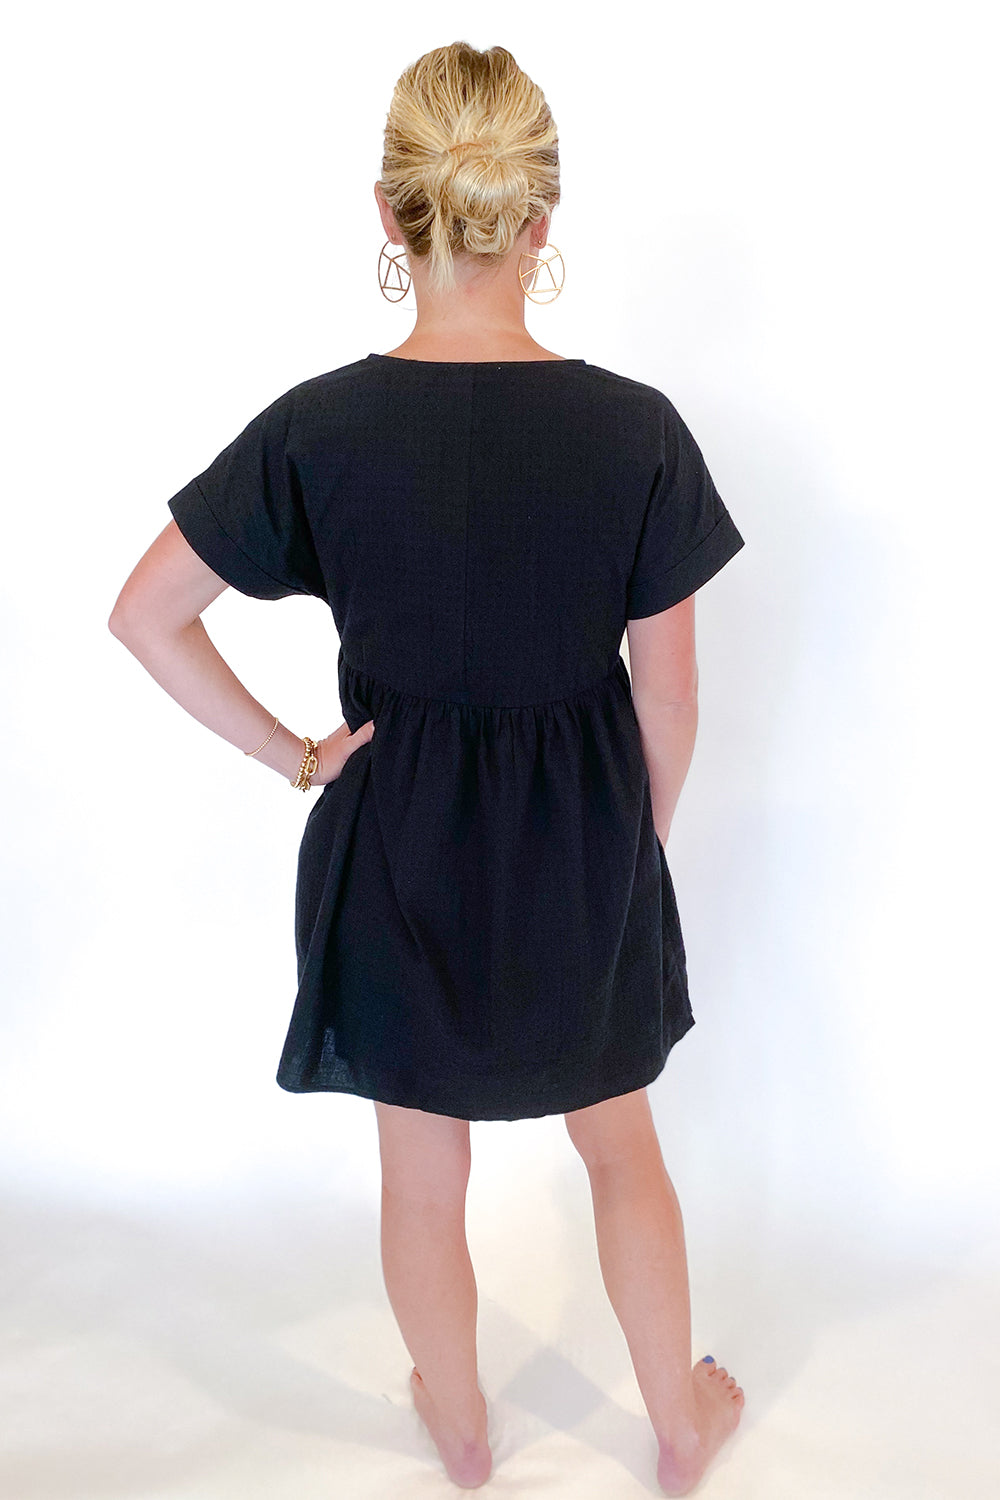 Textured V Neck Babydoll Dress Black